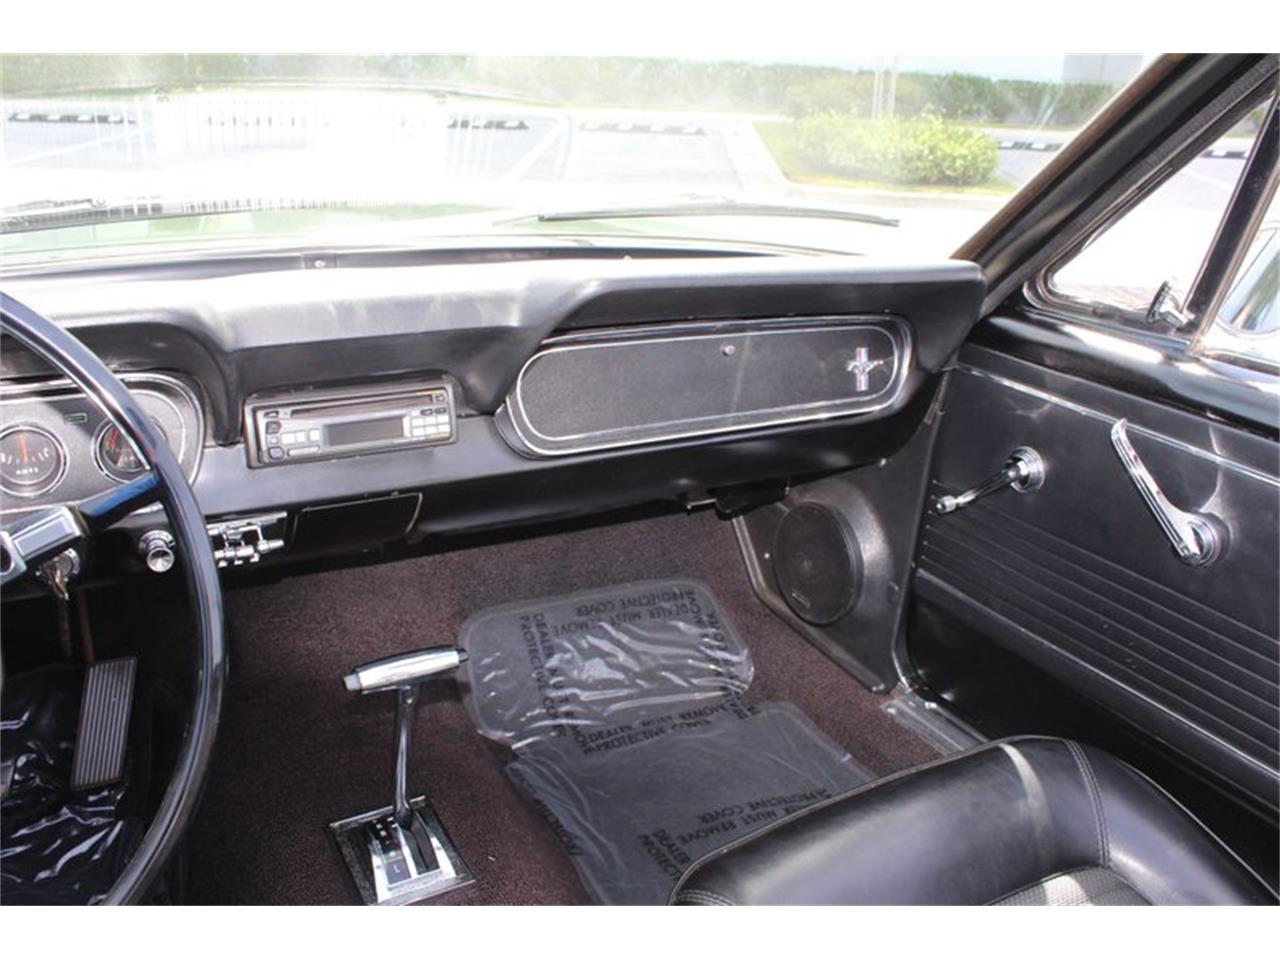 Ford Mustang V8 289 code c 1966 prix tout compris